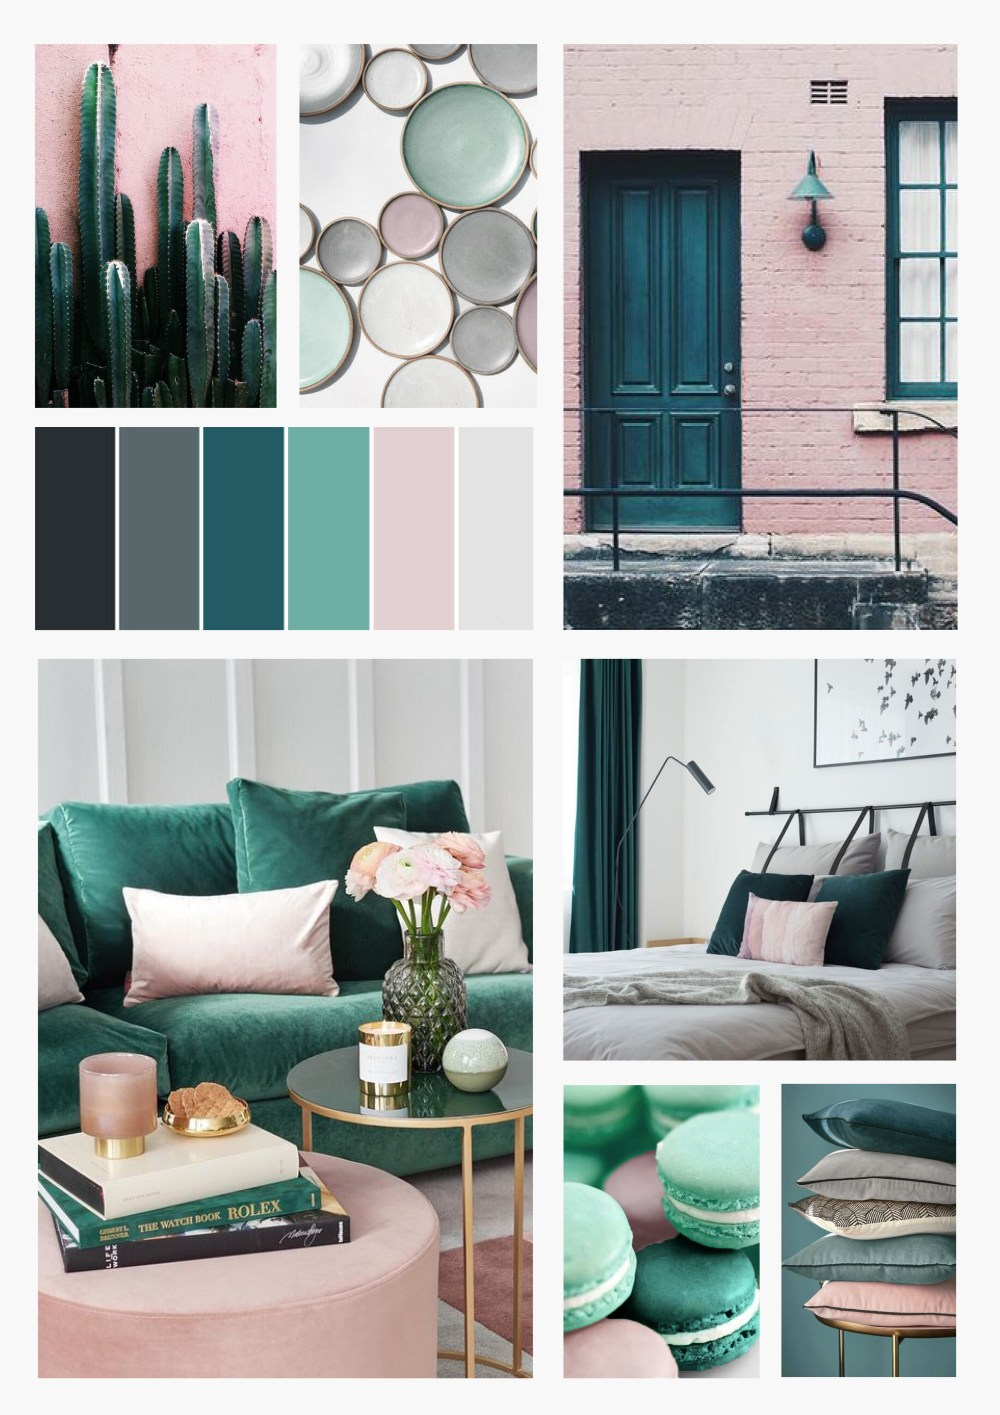 Colour scheme inspiration: Teal, blush, mint and grey